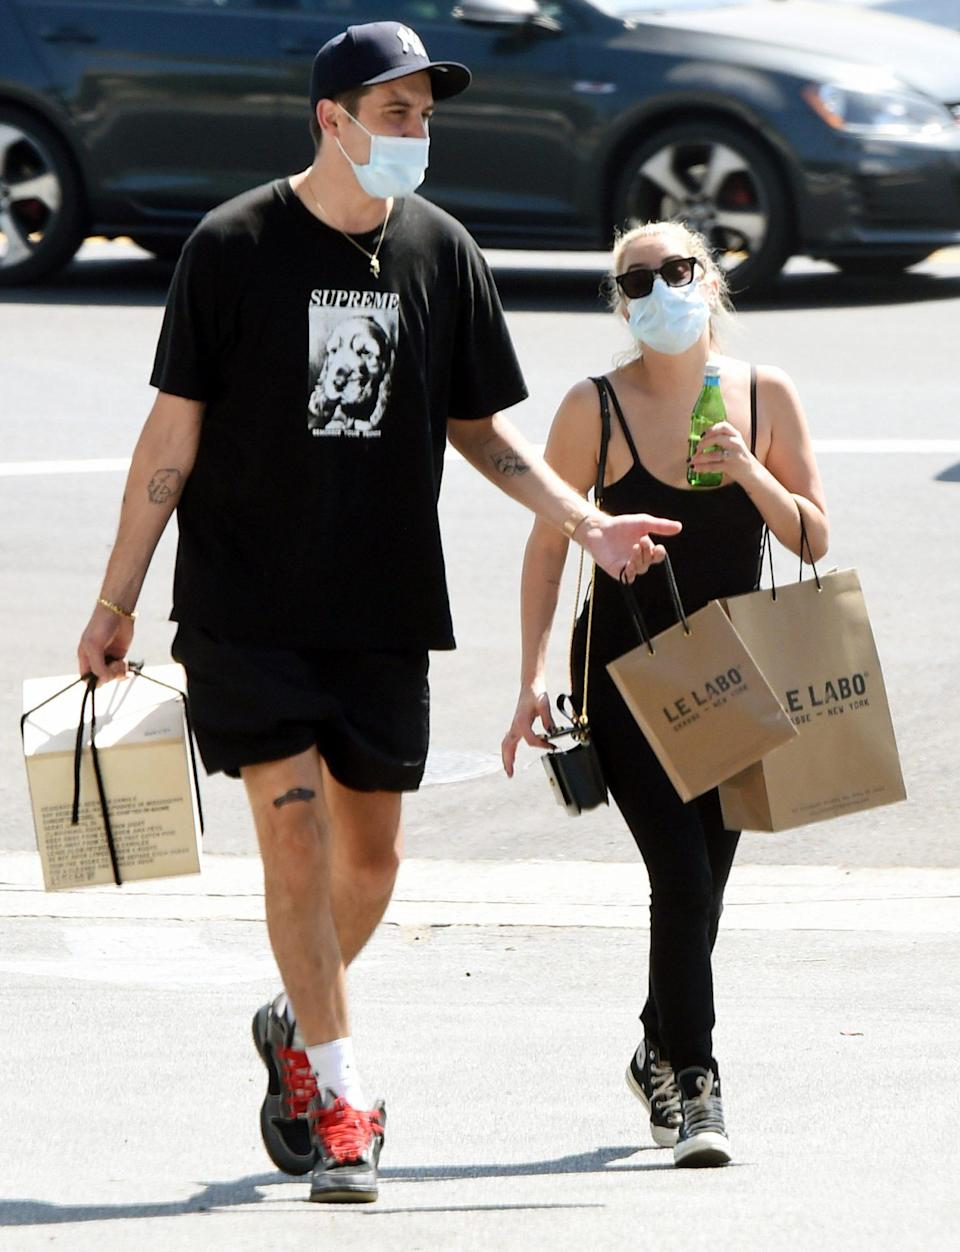 <p>Ashley Benson and new boyfriend G-Eazy stop by Le Labo for an afternoon shop on Tuesday in Los Angeles. </p>